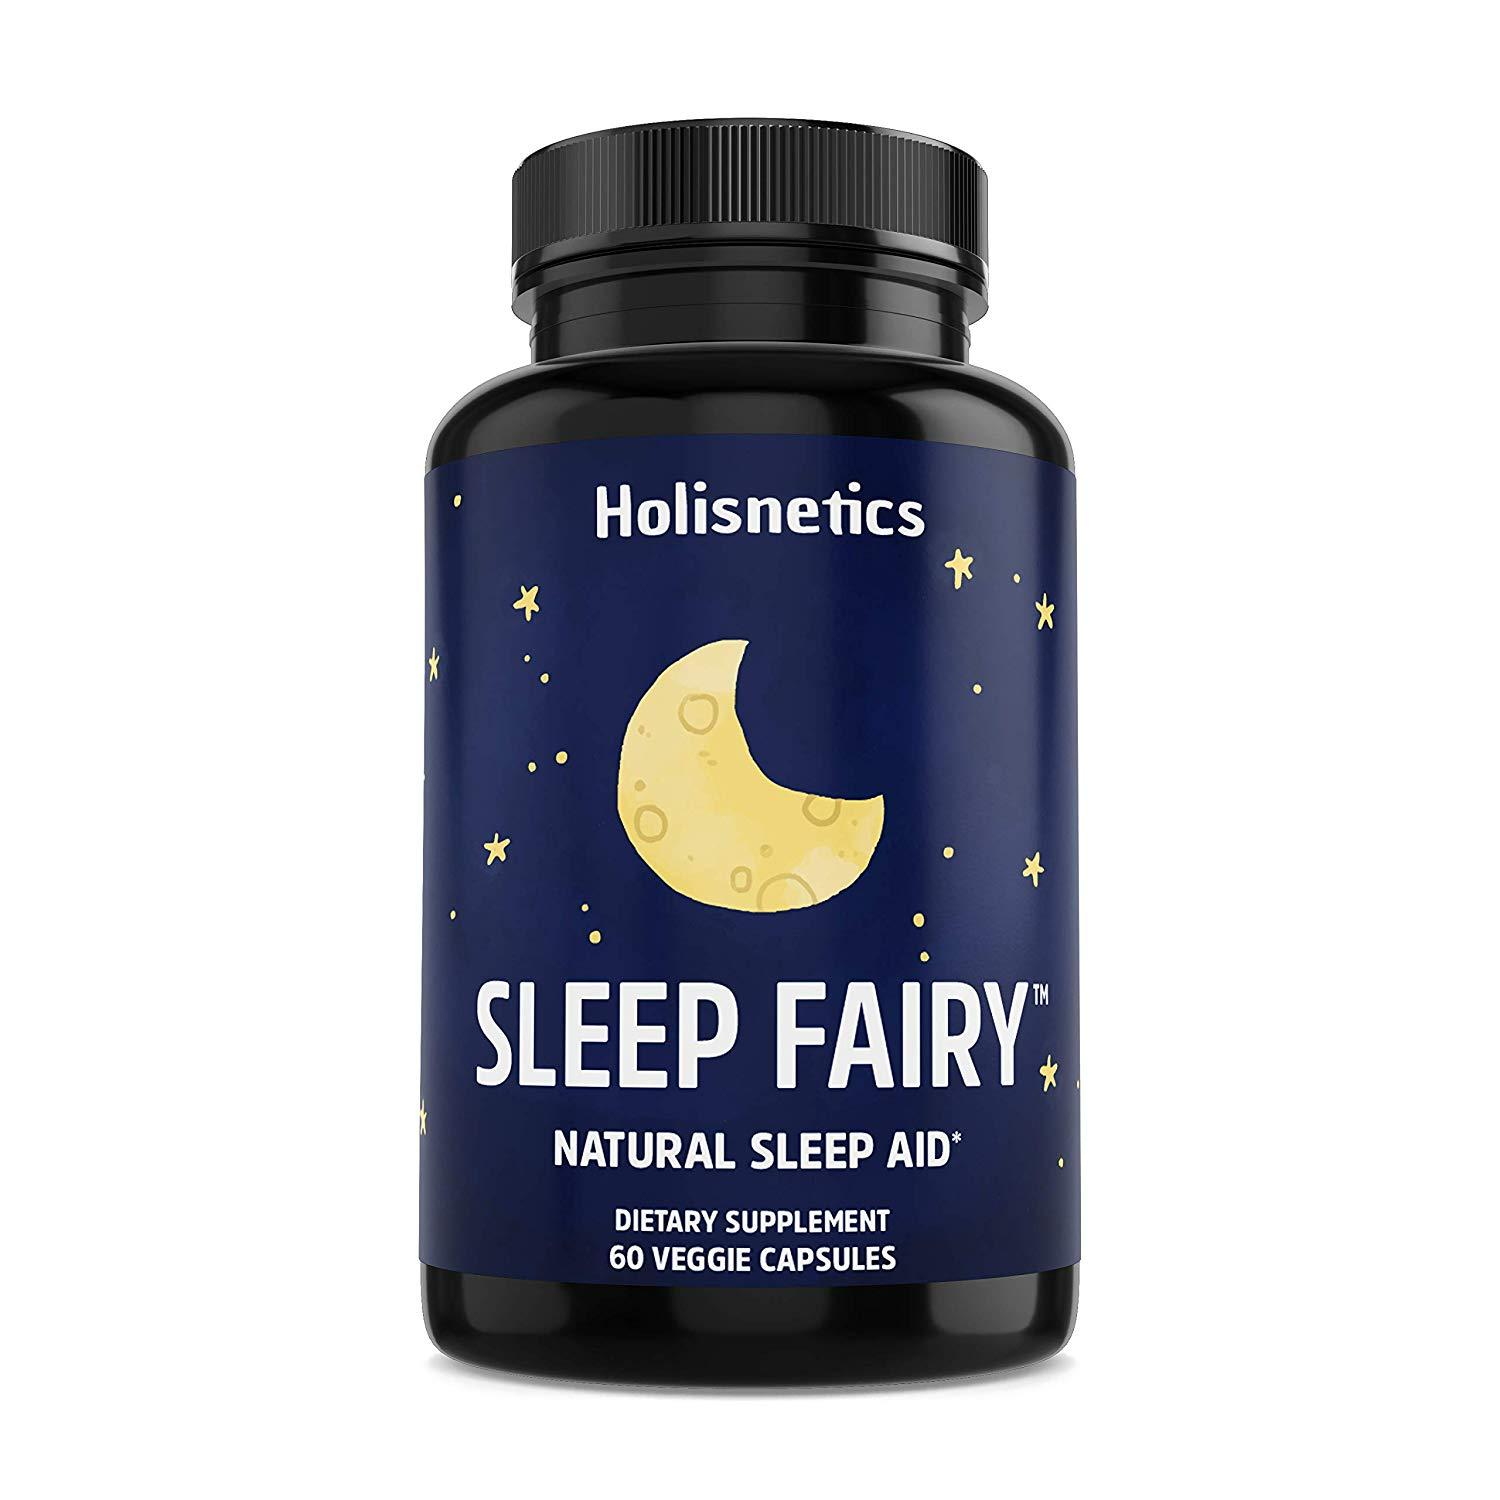 Non Habit Forming Sleep Aids Meaning